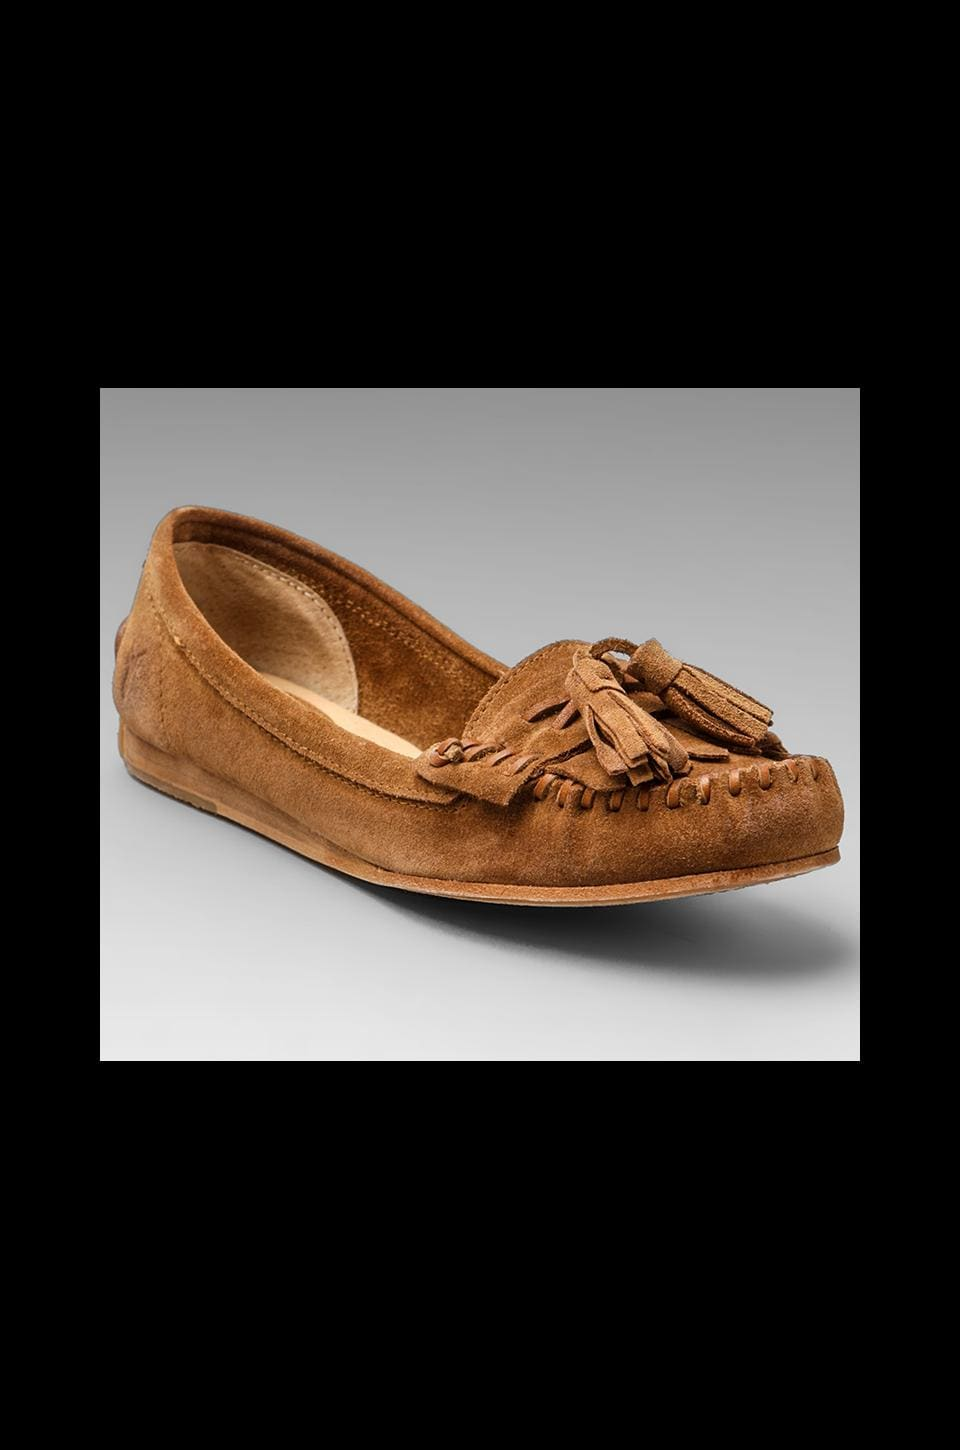 Frye Alex Tassel Moccasins in Brown